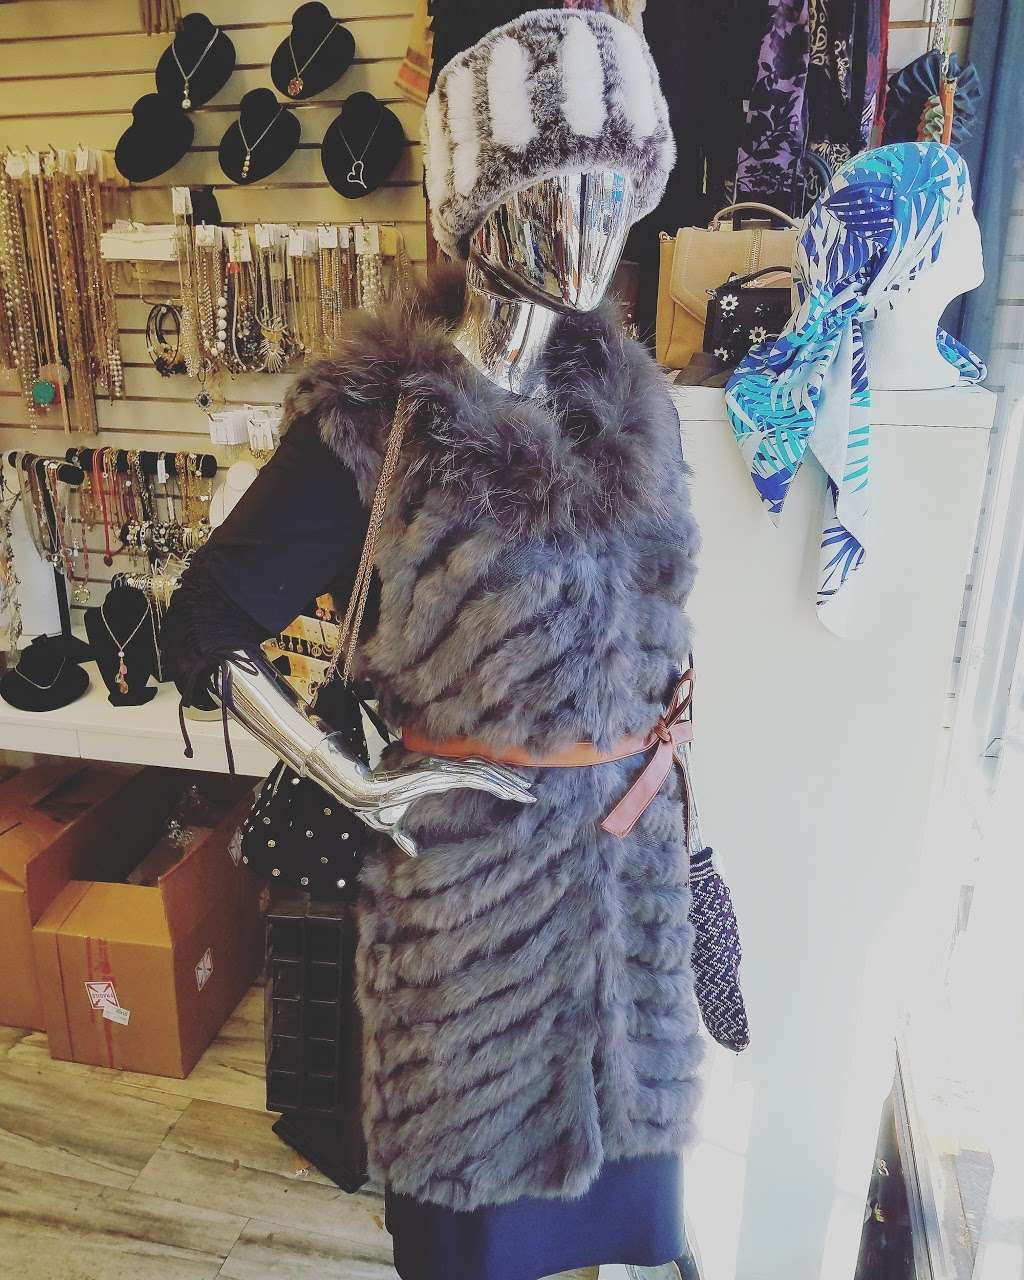 Crown Heights Hosiery - clothing store    Photo 9 of 10   Address: 312 Kingston Ave, Brooklyn, NY 11213, USA   Phone: (718) 467-6276